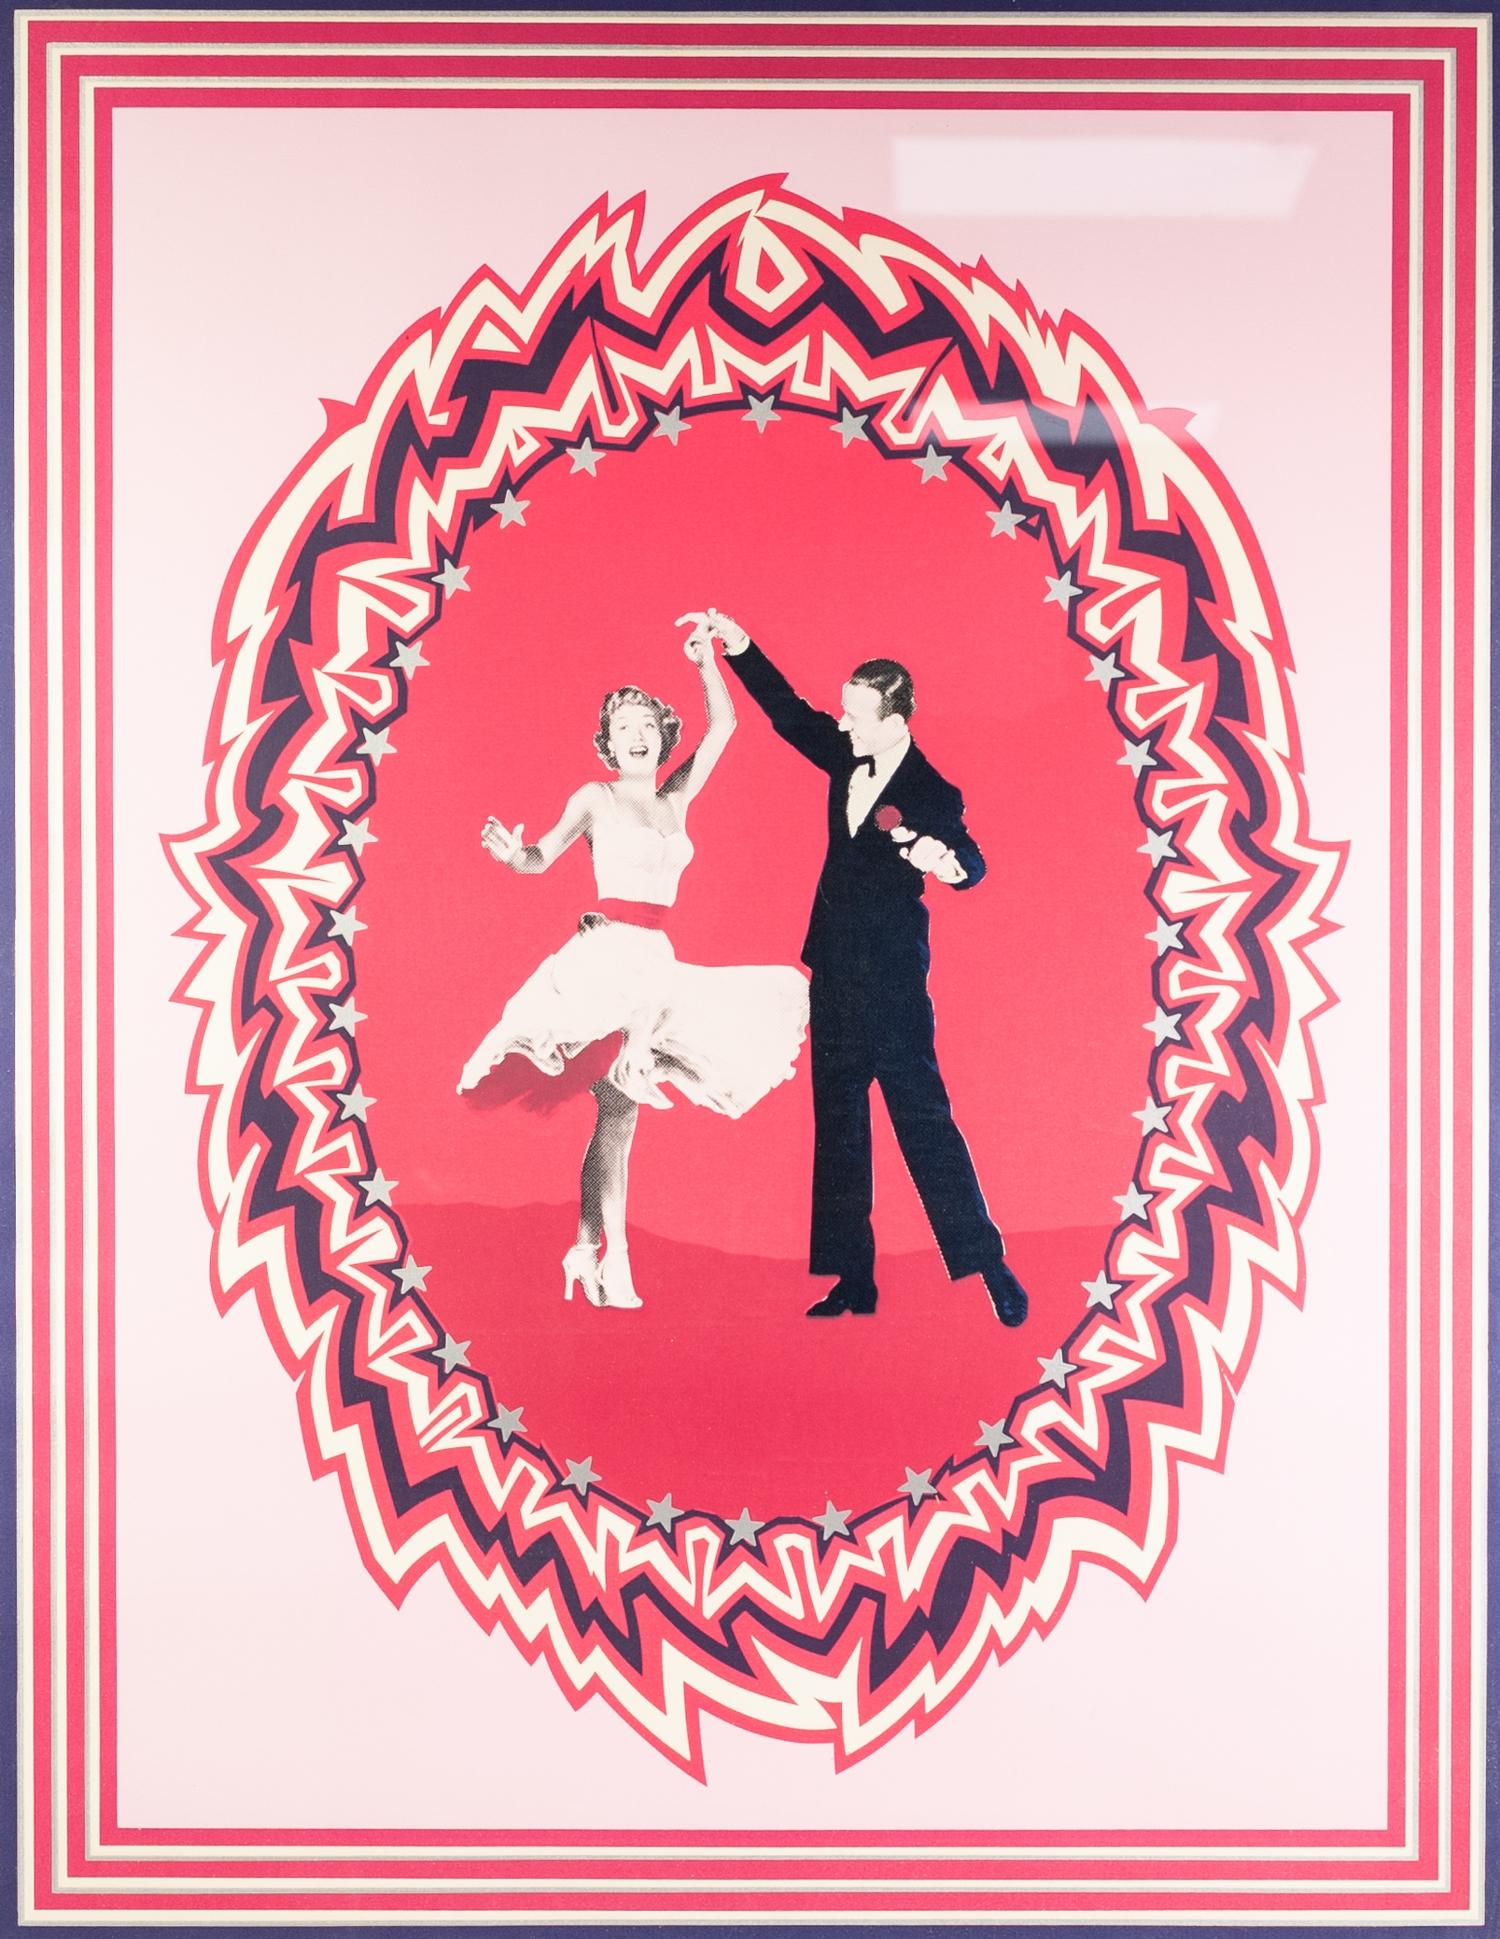 Lot 330 - ELLEN KUHN SILK SCREEN PRINT, ARTIST SIGNED LIMITED EDITION 'Fred Astaire & Jane Powell' Signed,